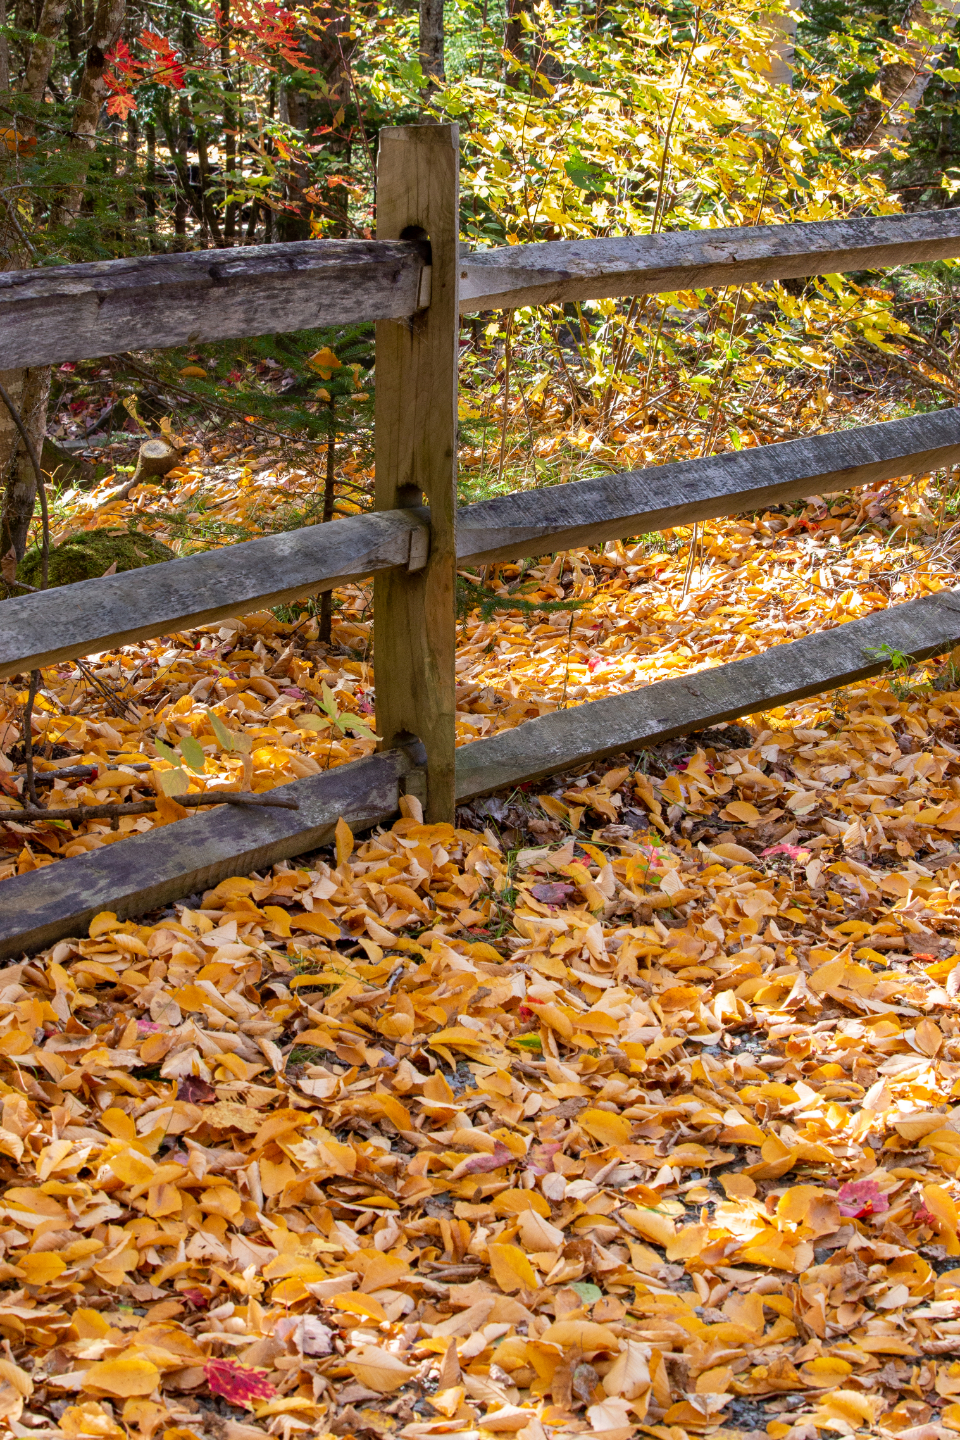 autumn leaves nature fence forest trail hiking colorful orange fall leaf park scenic outside foliage